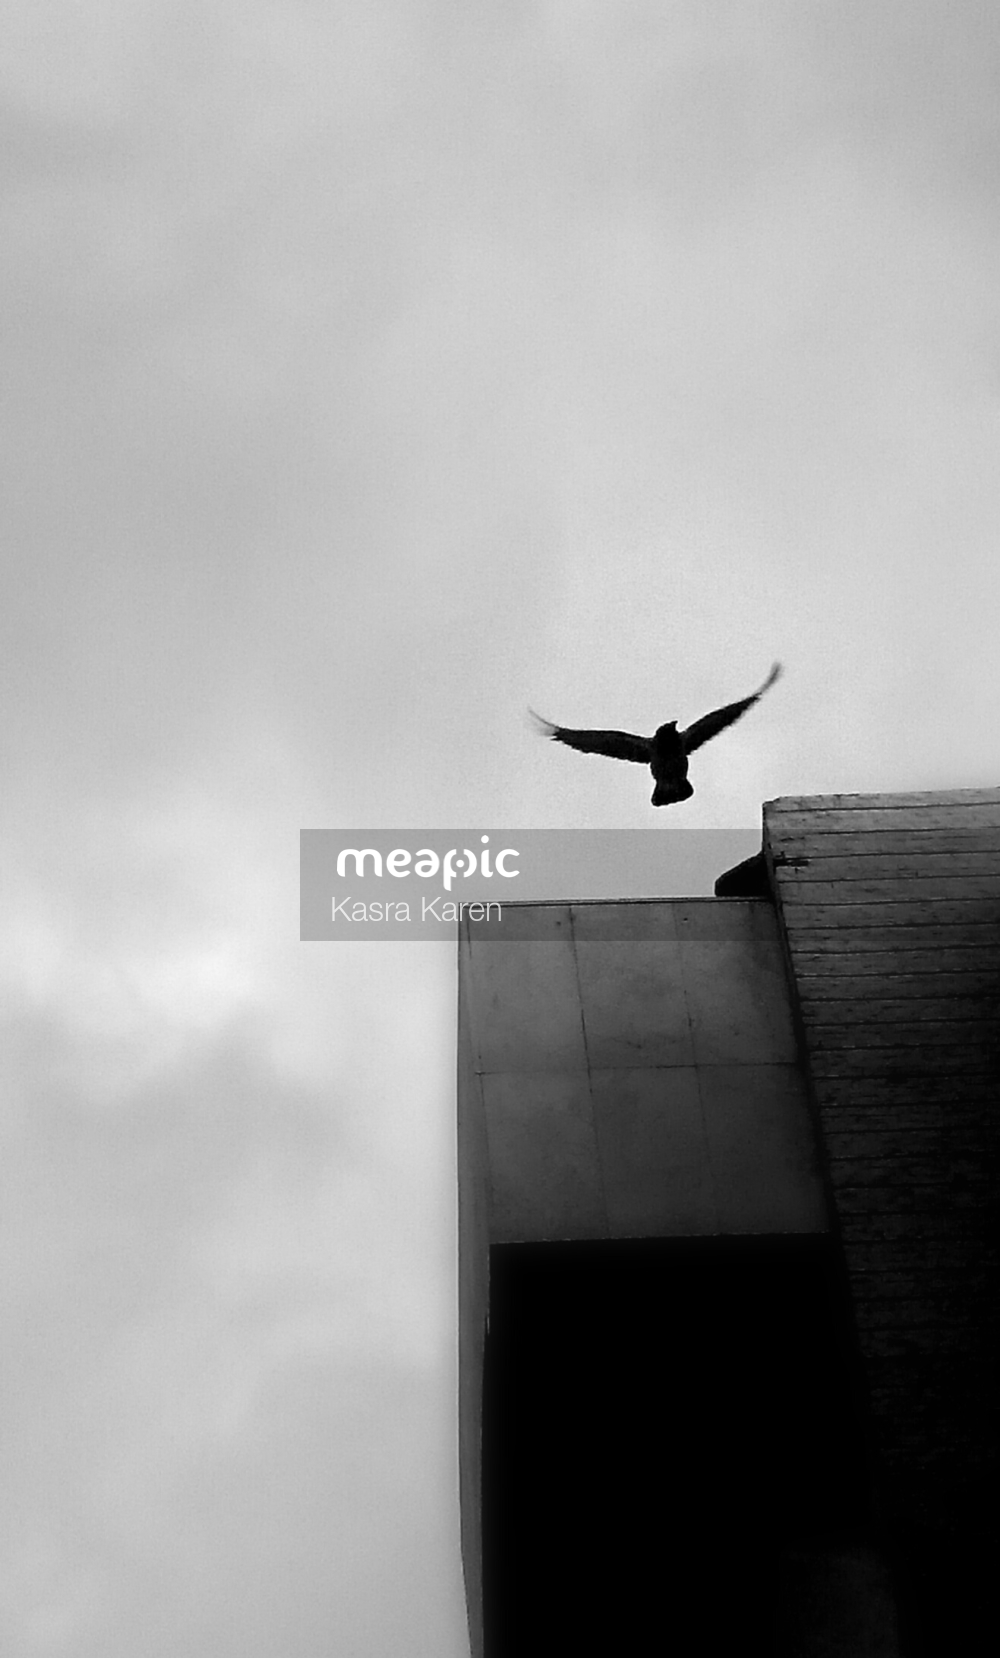 Plane Flying In The Air On A Cloudy Day Stock Photo · Meapic